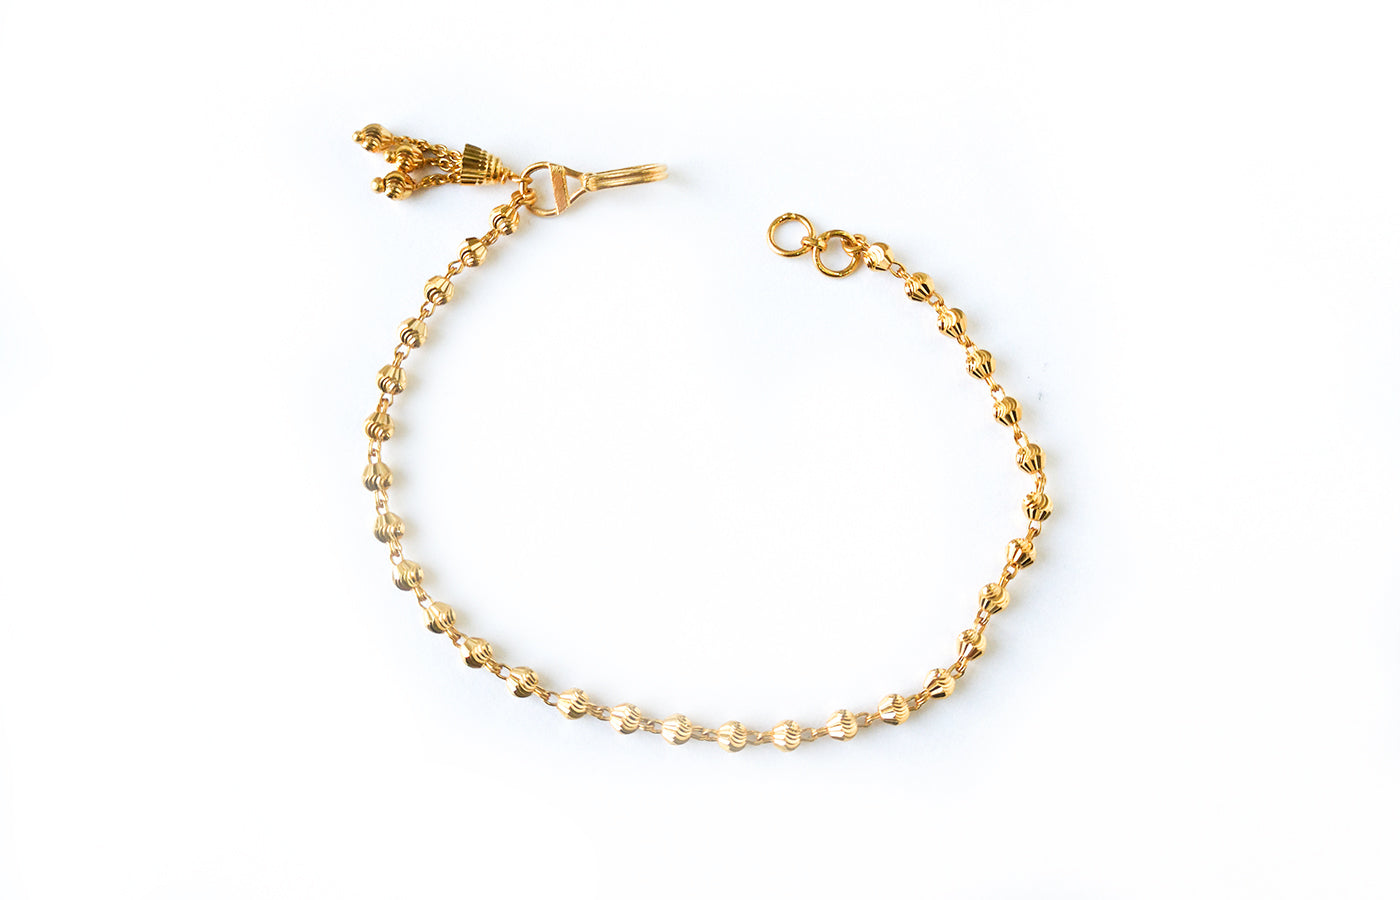 22ct Gold Bracelet with Diamond Cut Beads and Drop Charm on Clasp (4.6g) LBR-7610